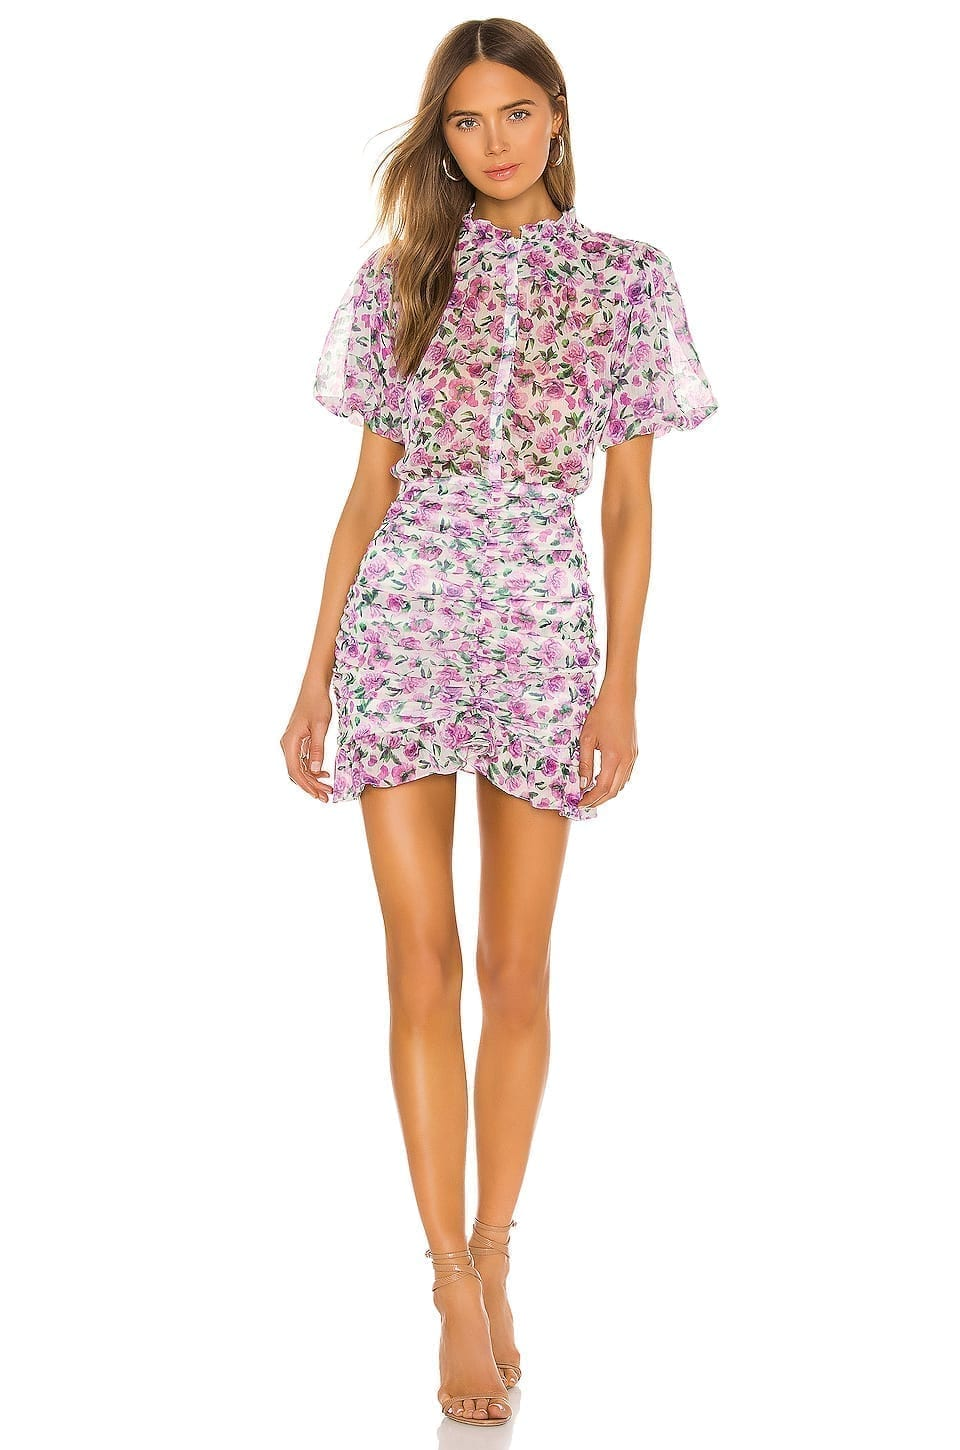 IORANE Floral Mini Dress